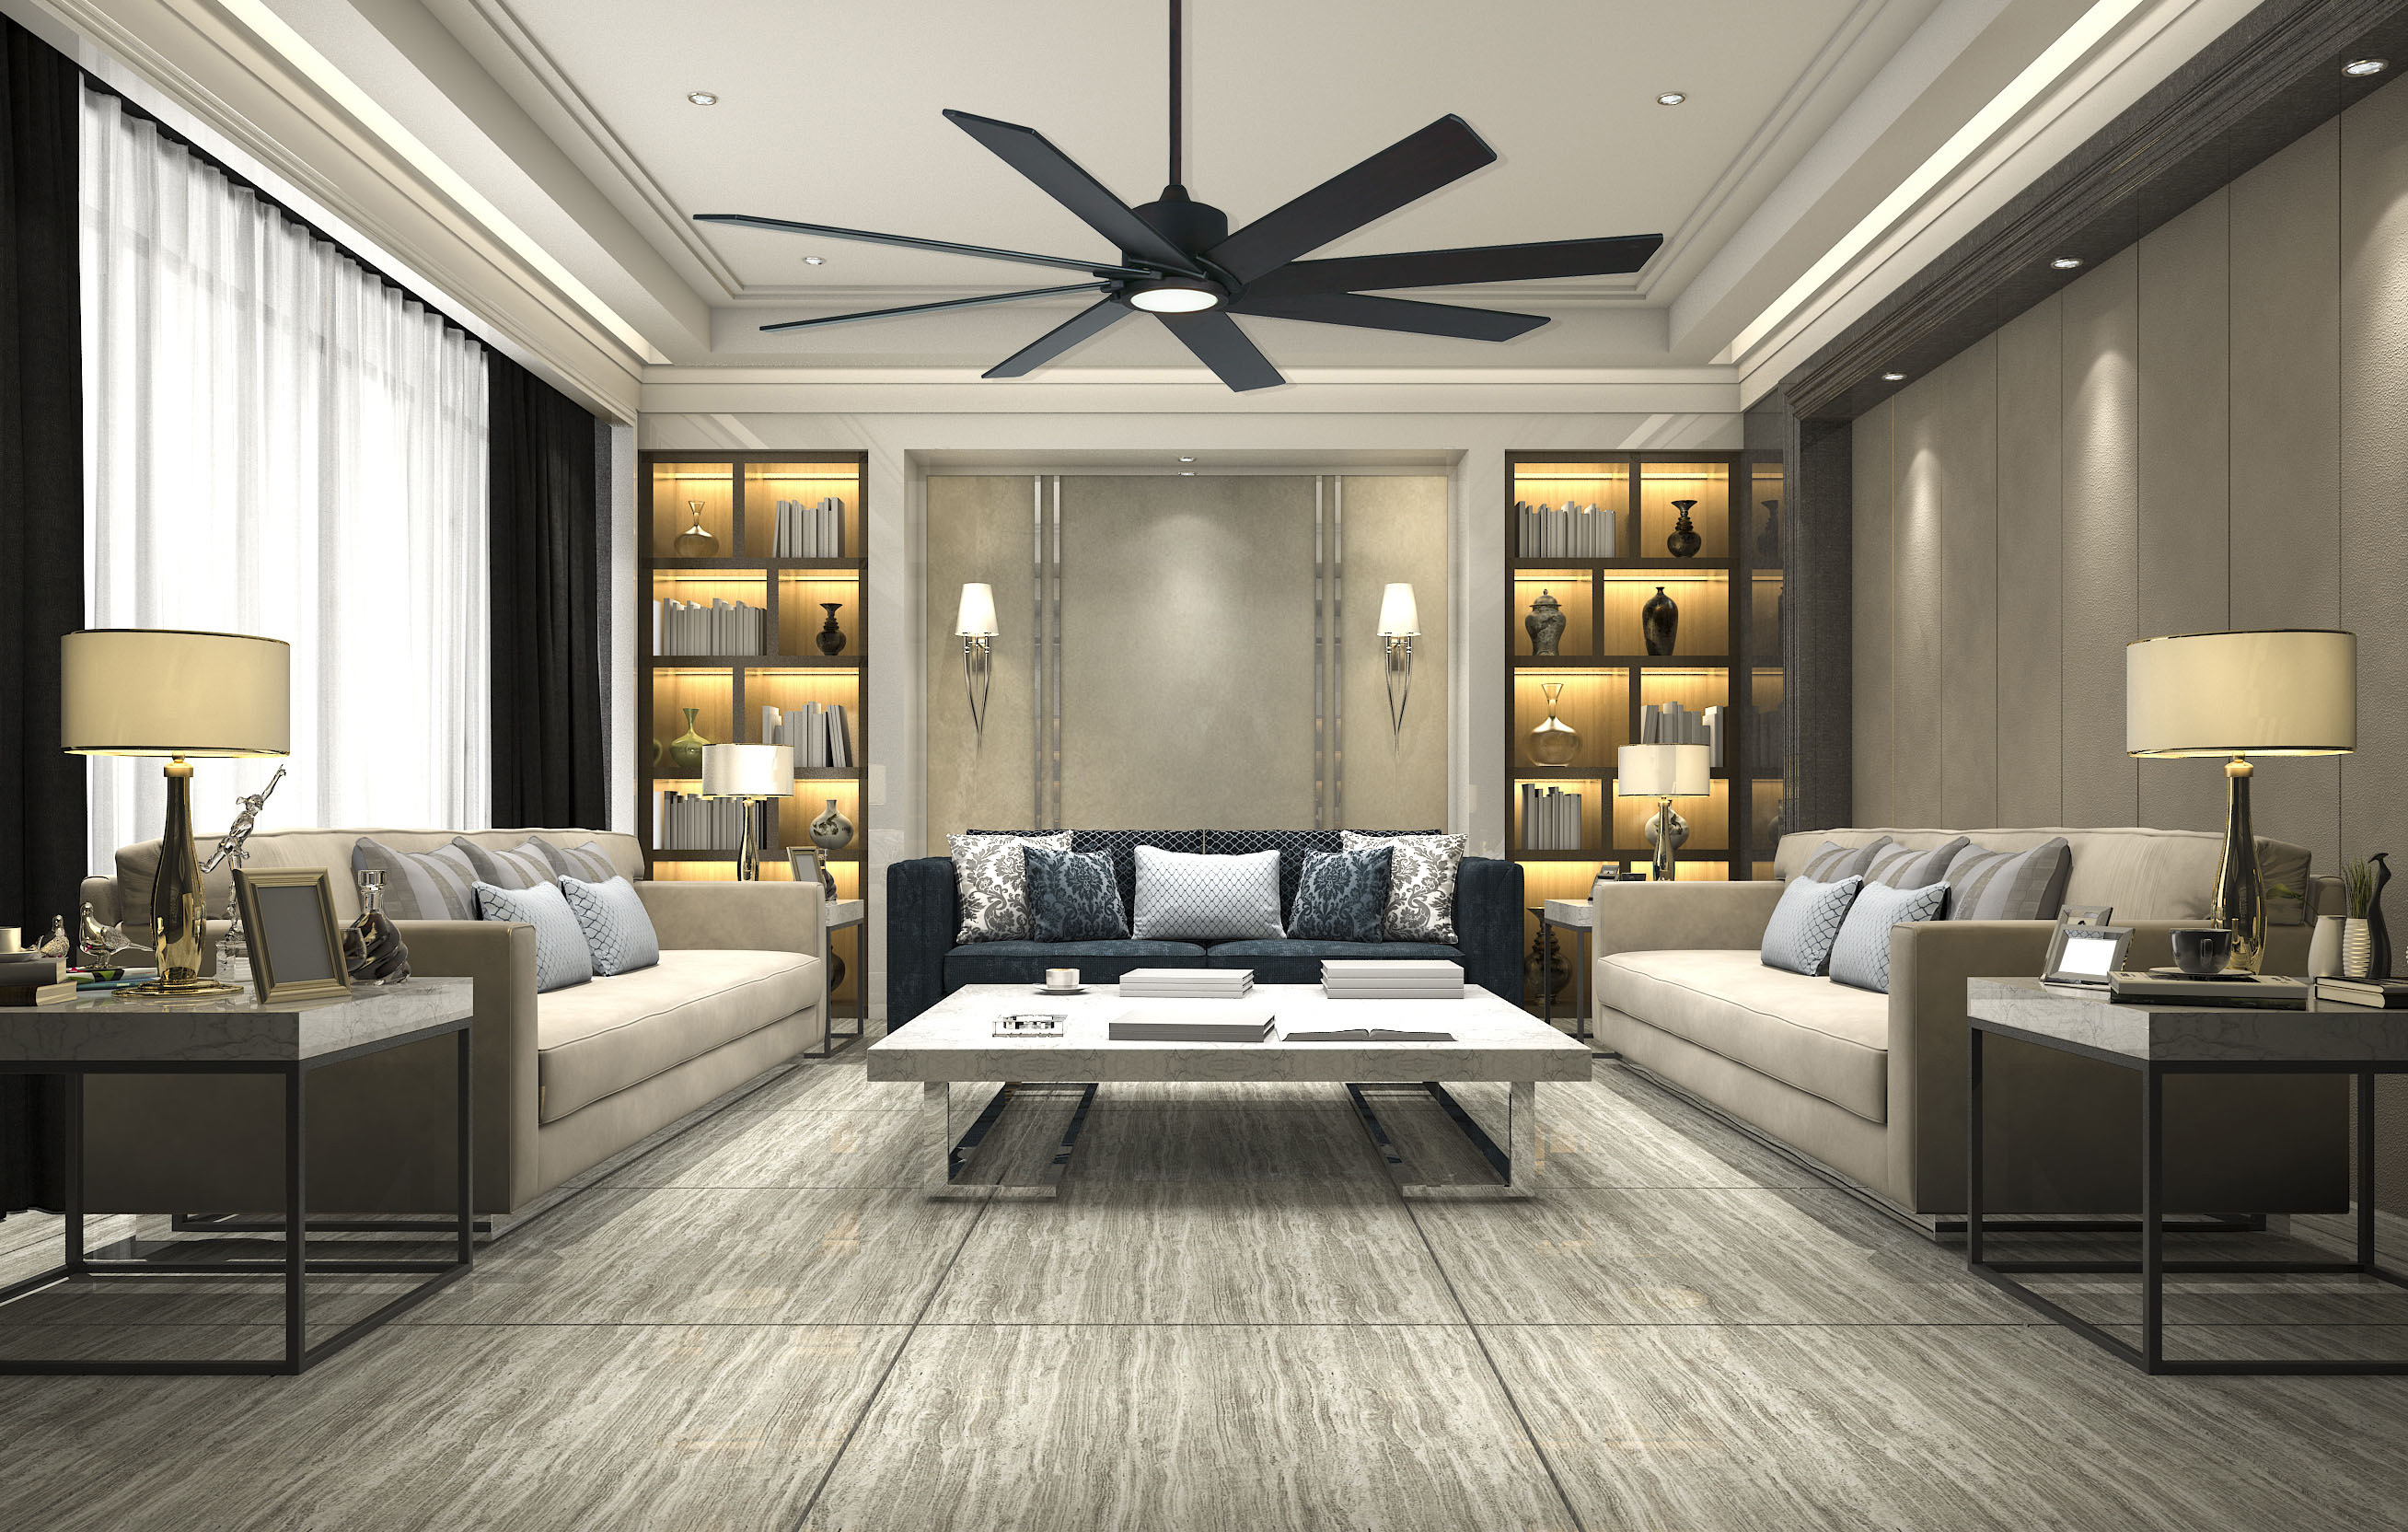 Opinion At Home Ceiling Fans To See Or Not To See Is The Question